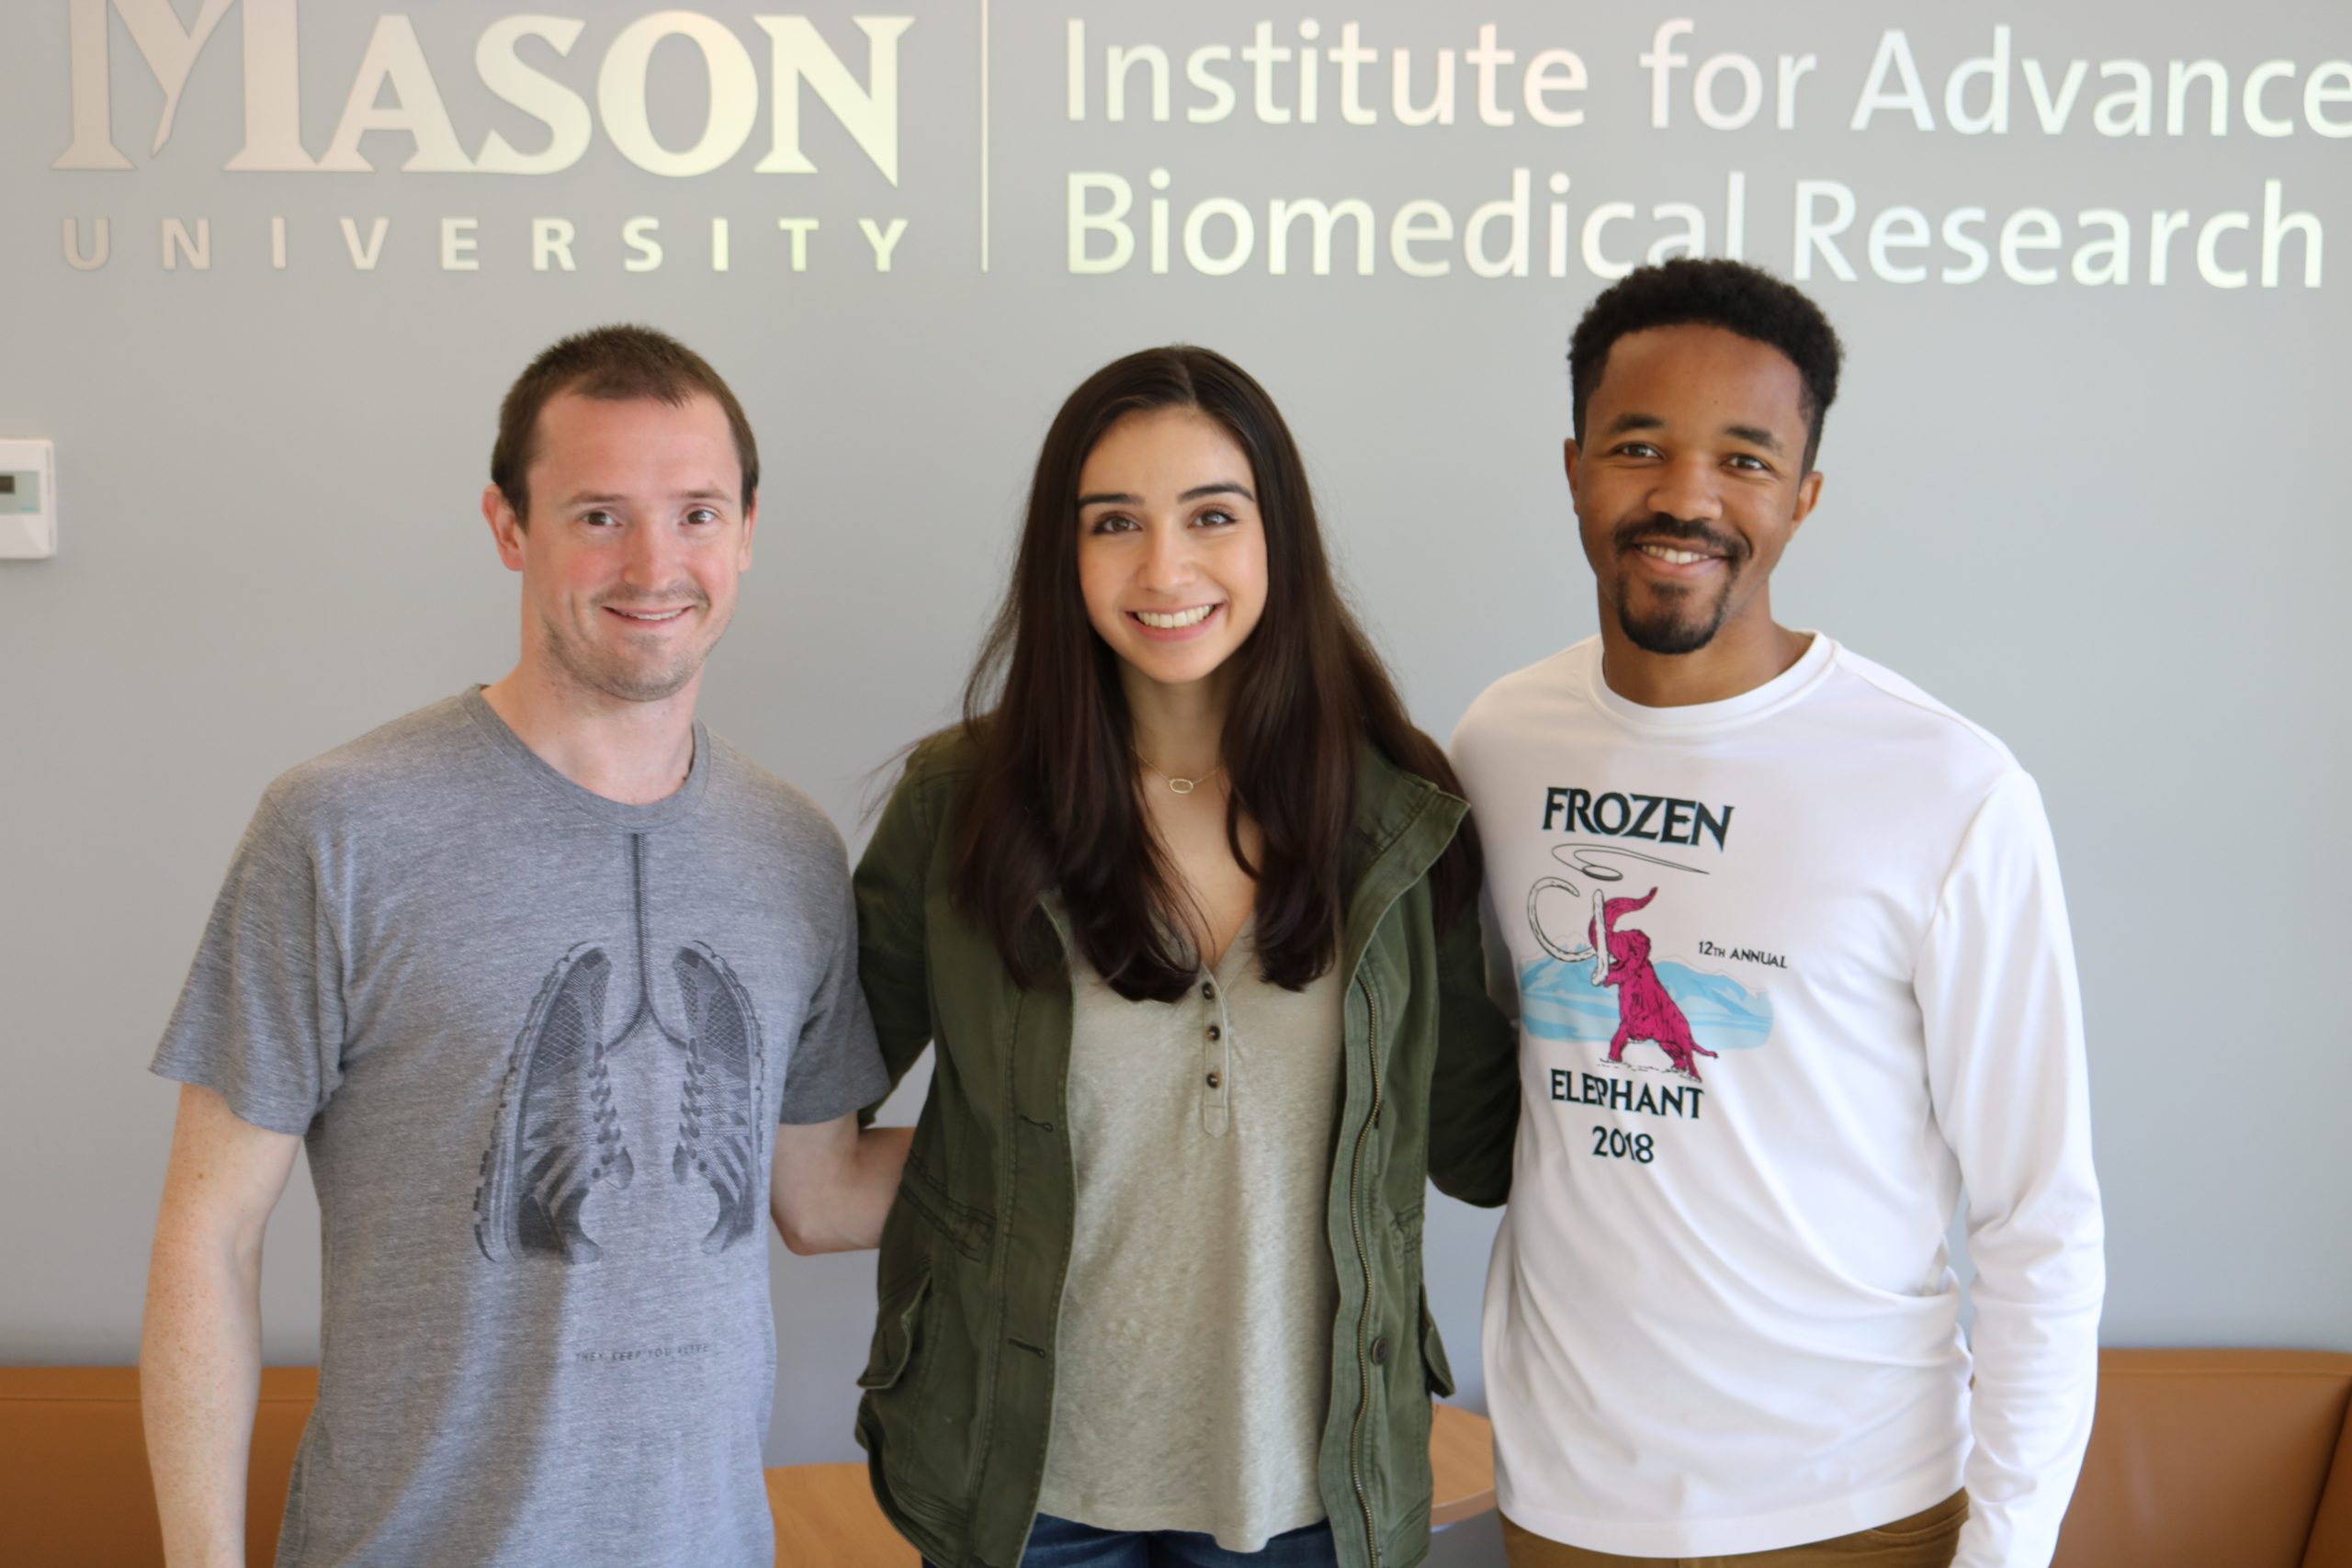 Ambassador Program's recipient Kayla Podgurski, Josh Bryant, and Kyle Williamson at our research facility.